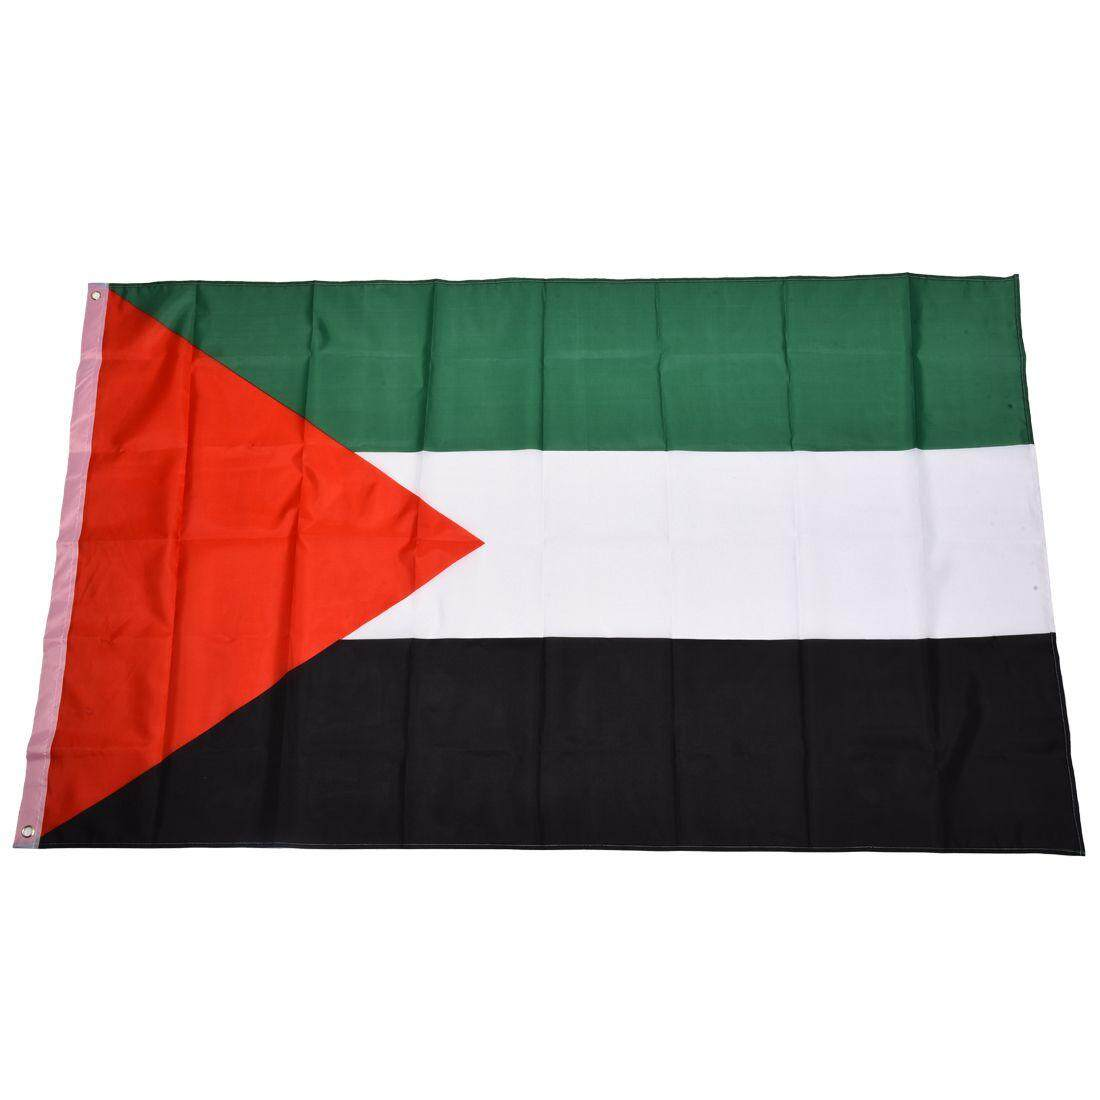 Palestine National Flag 5ft X 3ft By Benefitwen.